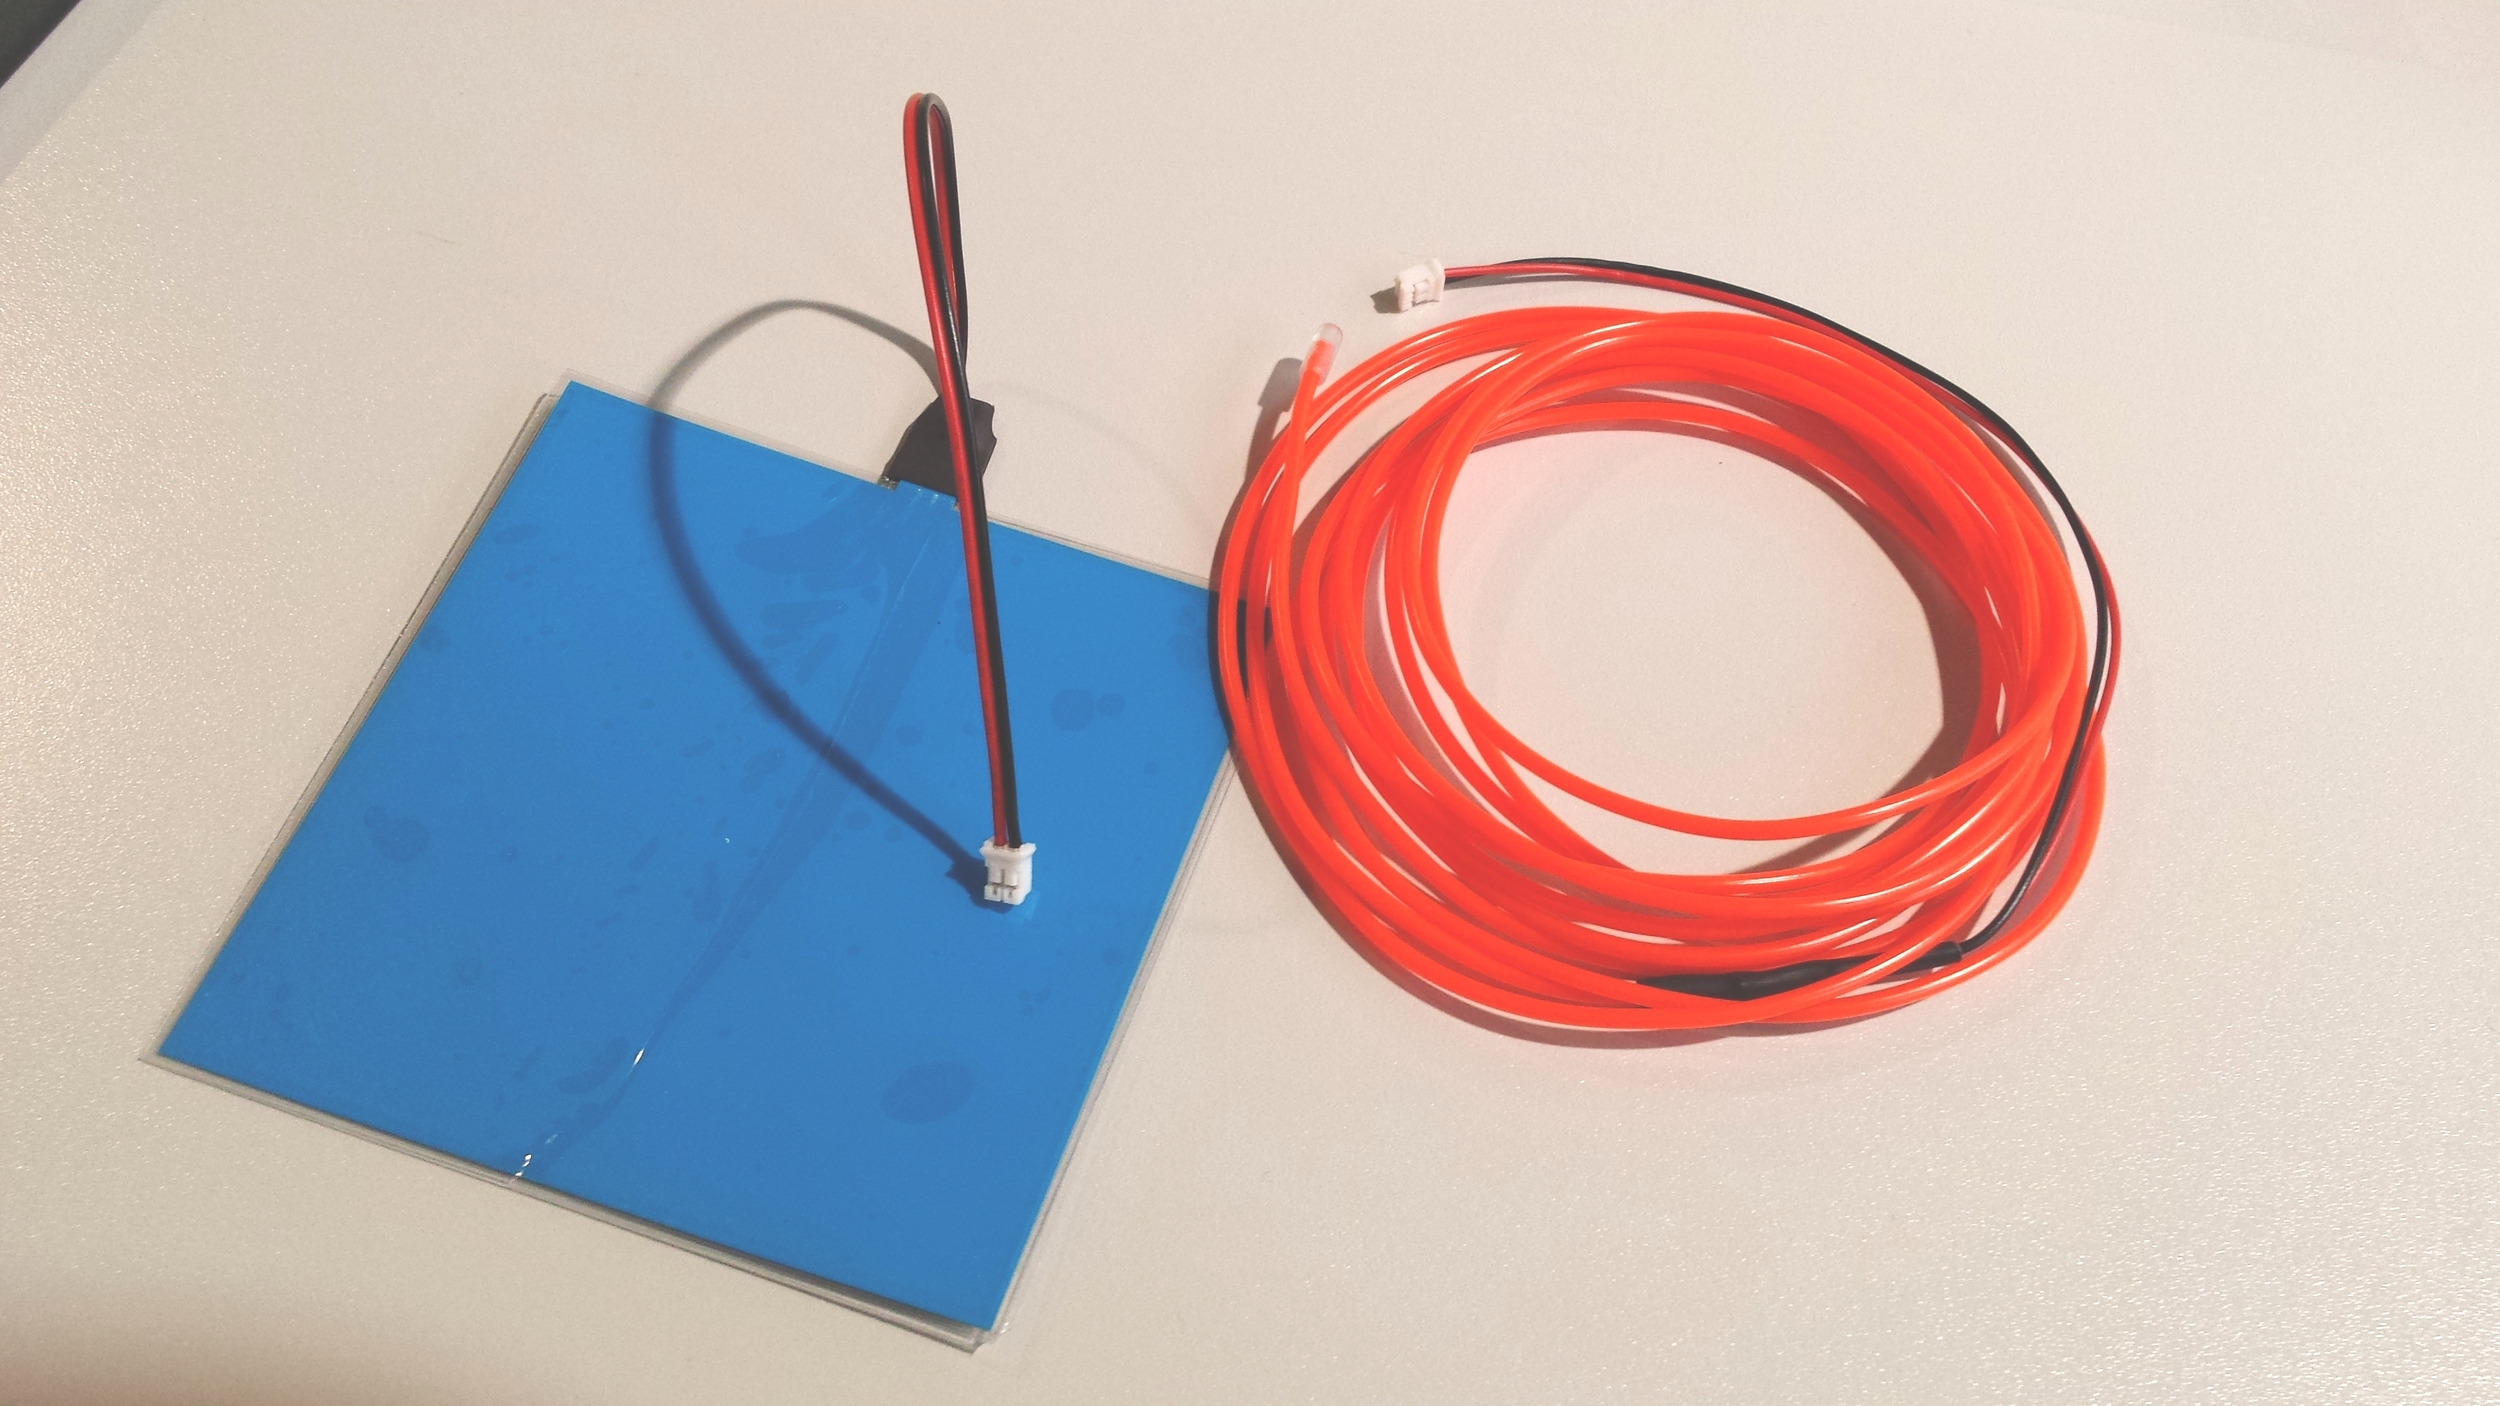 Panel y cable electroluminescentes